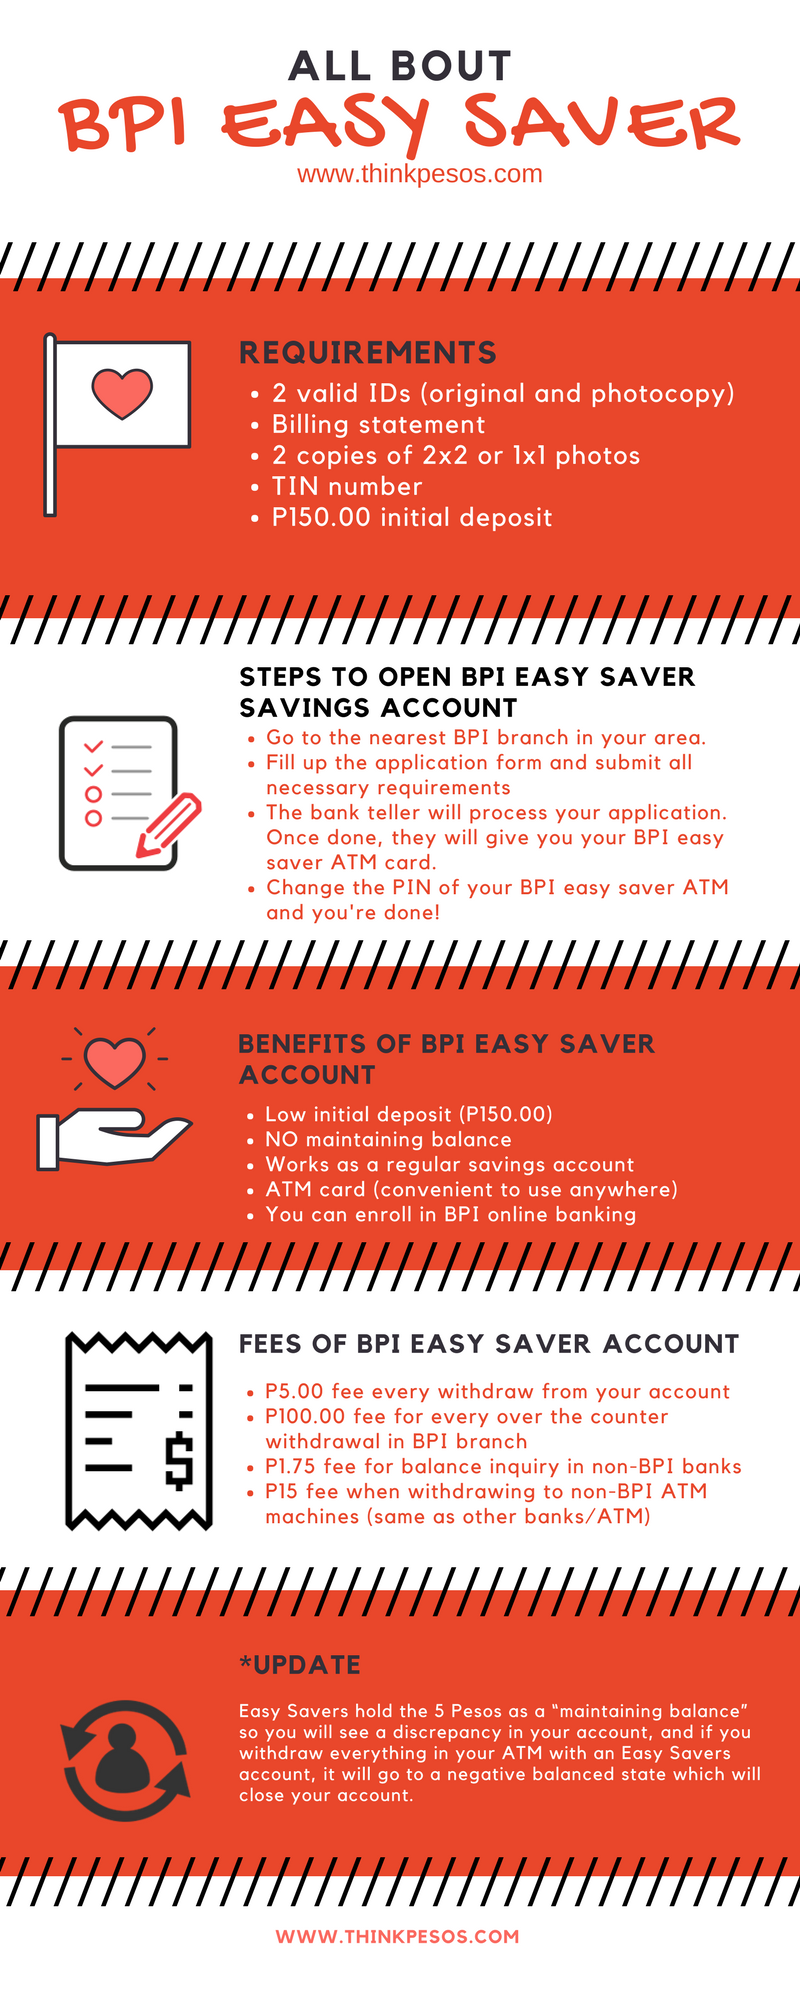 How to open BPI Easy saver savings account [Steps and